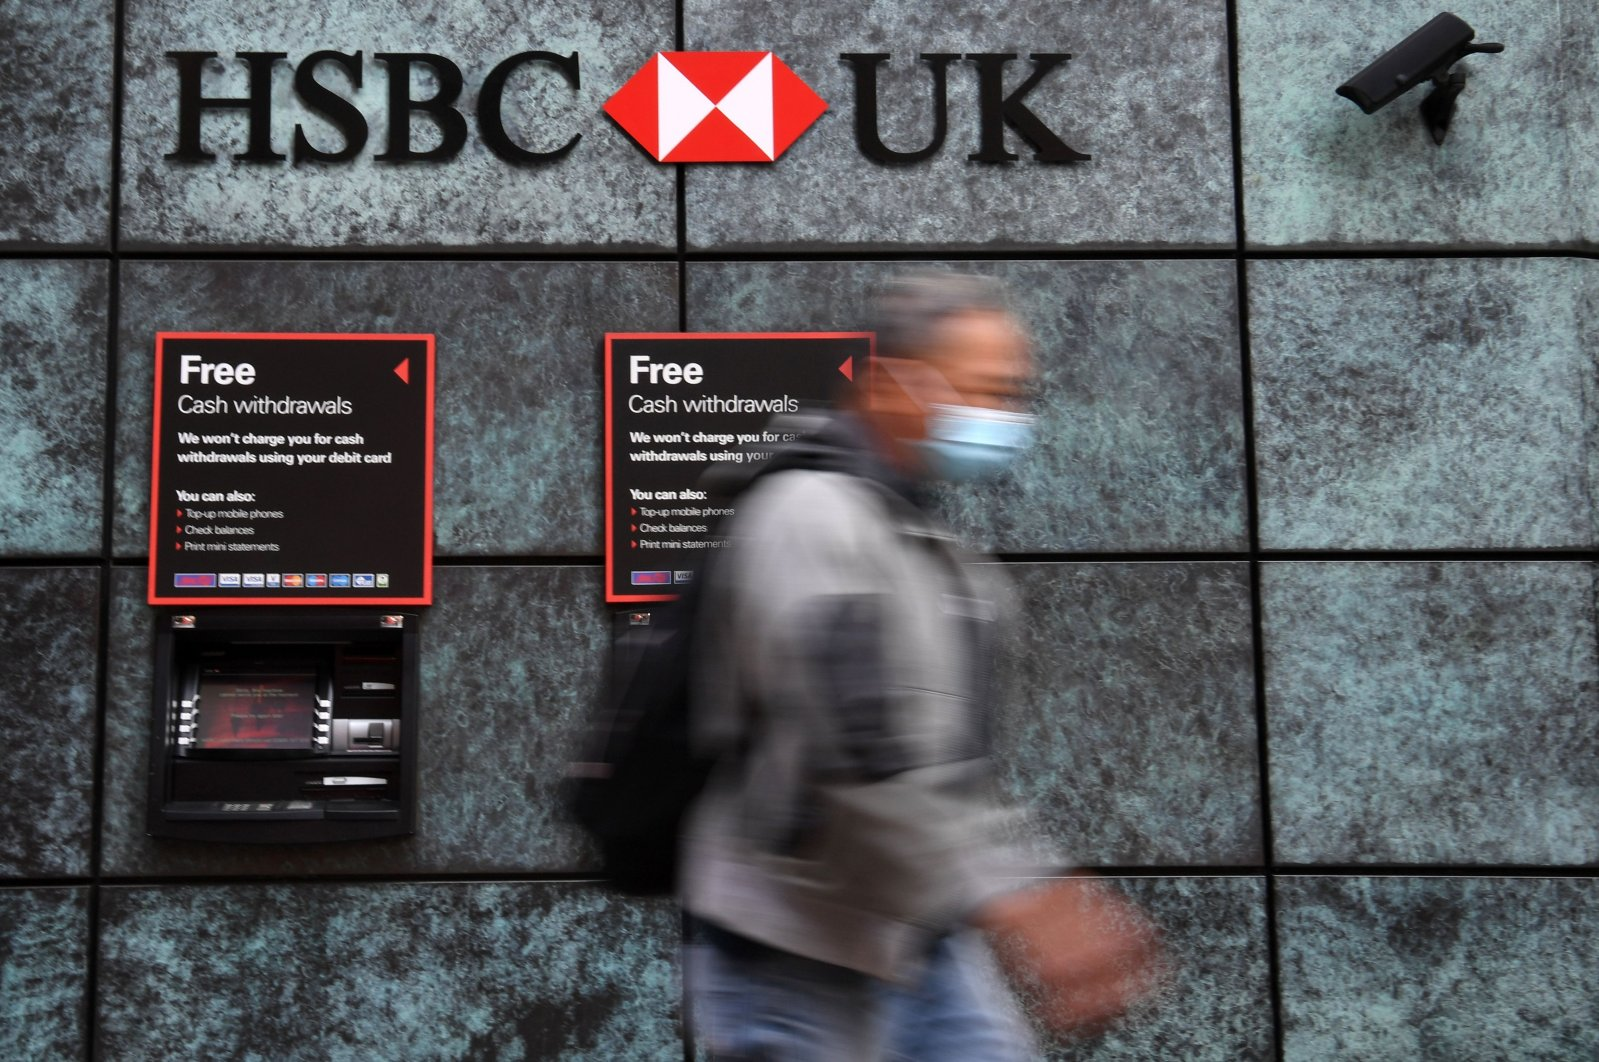 A pedestrian wearing a face mask due to the COVID-19 pandemic walks past a branch of an HSBC bank in central London, Aug. 3, 2020. (AFP Photo)